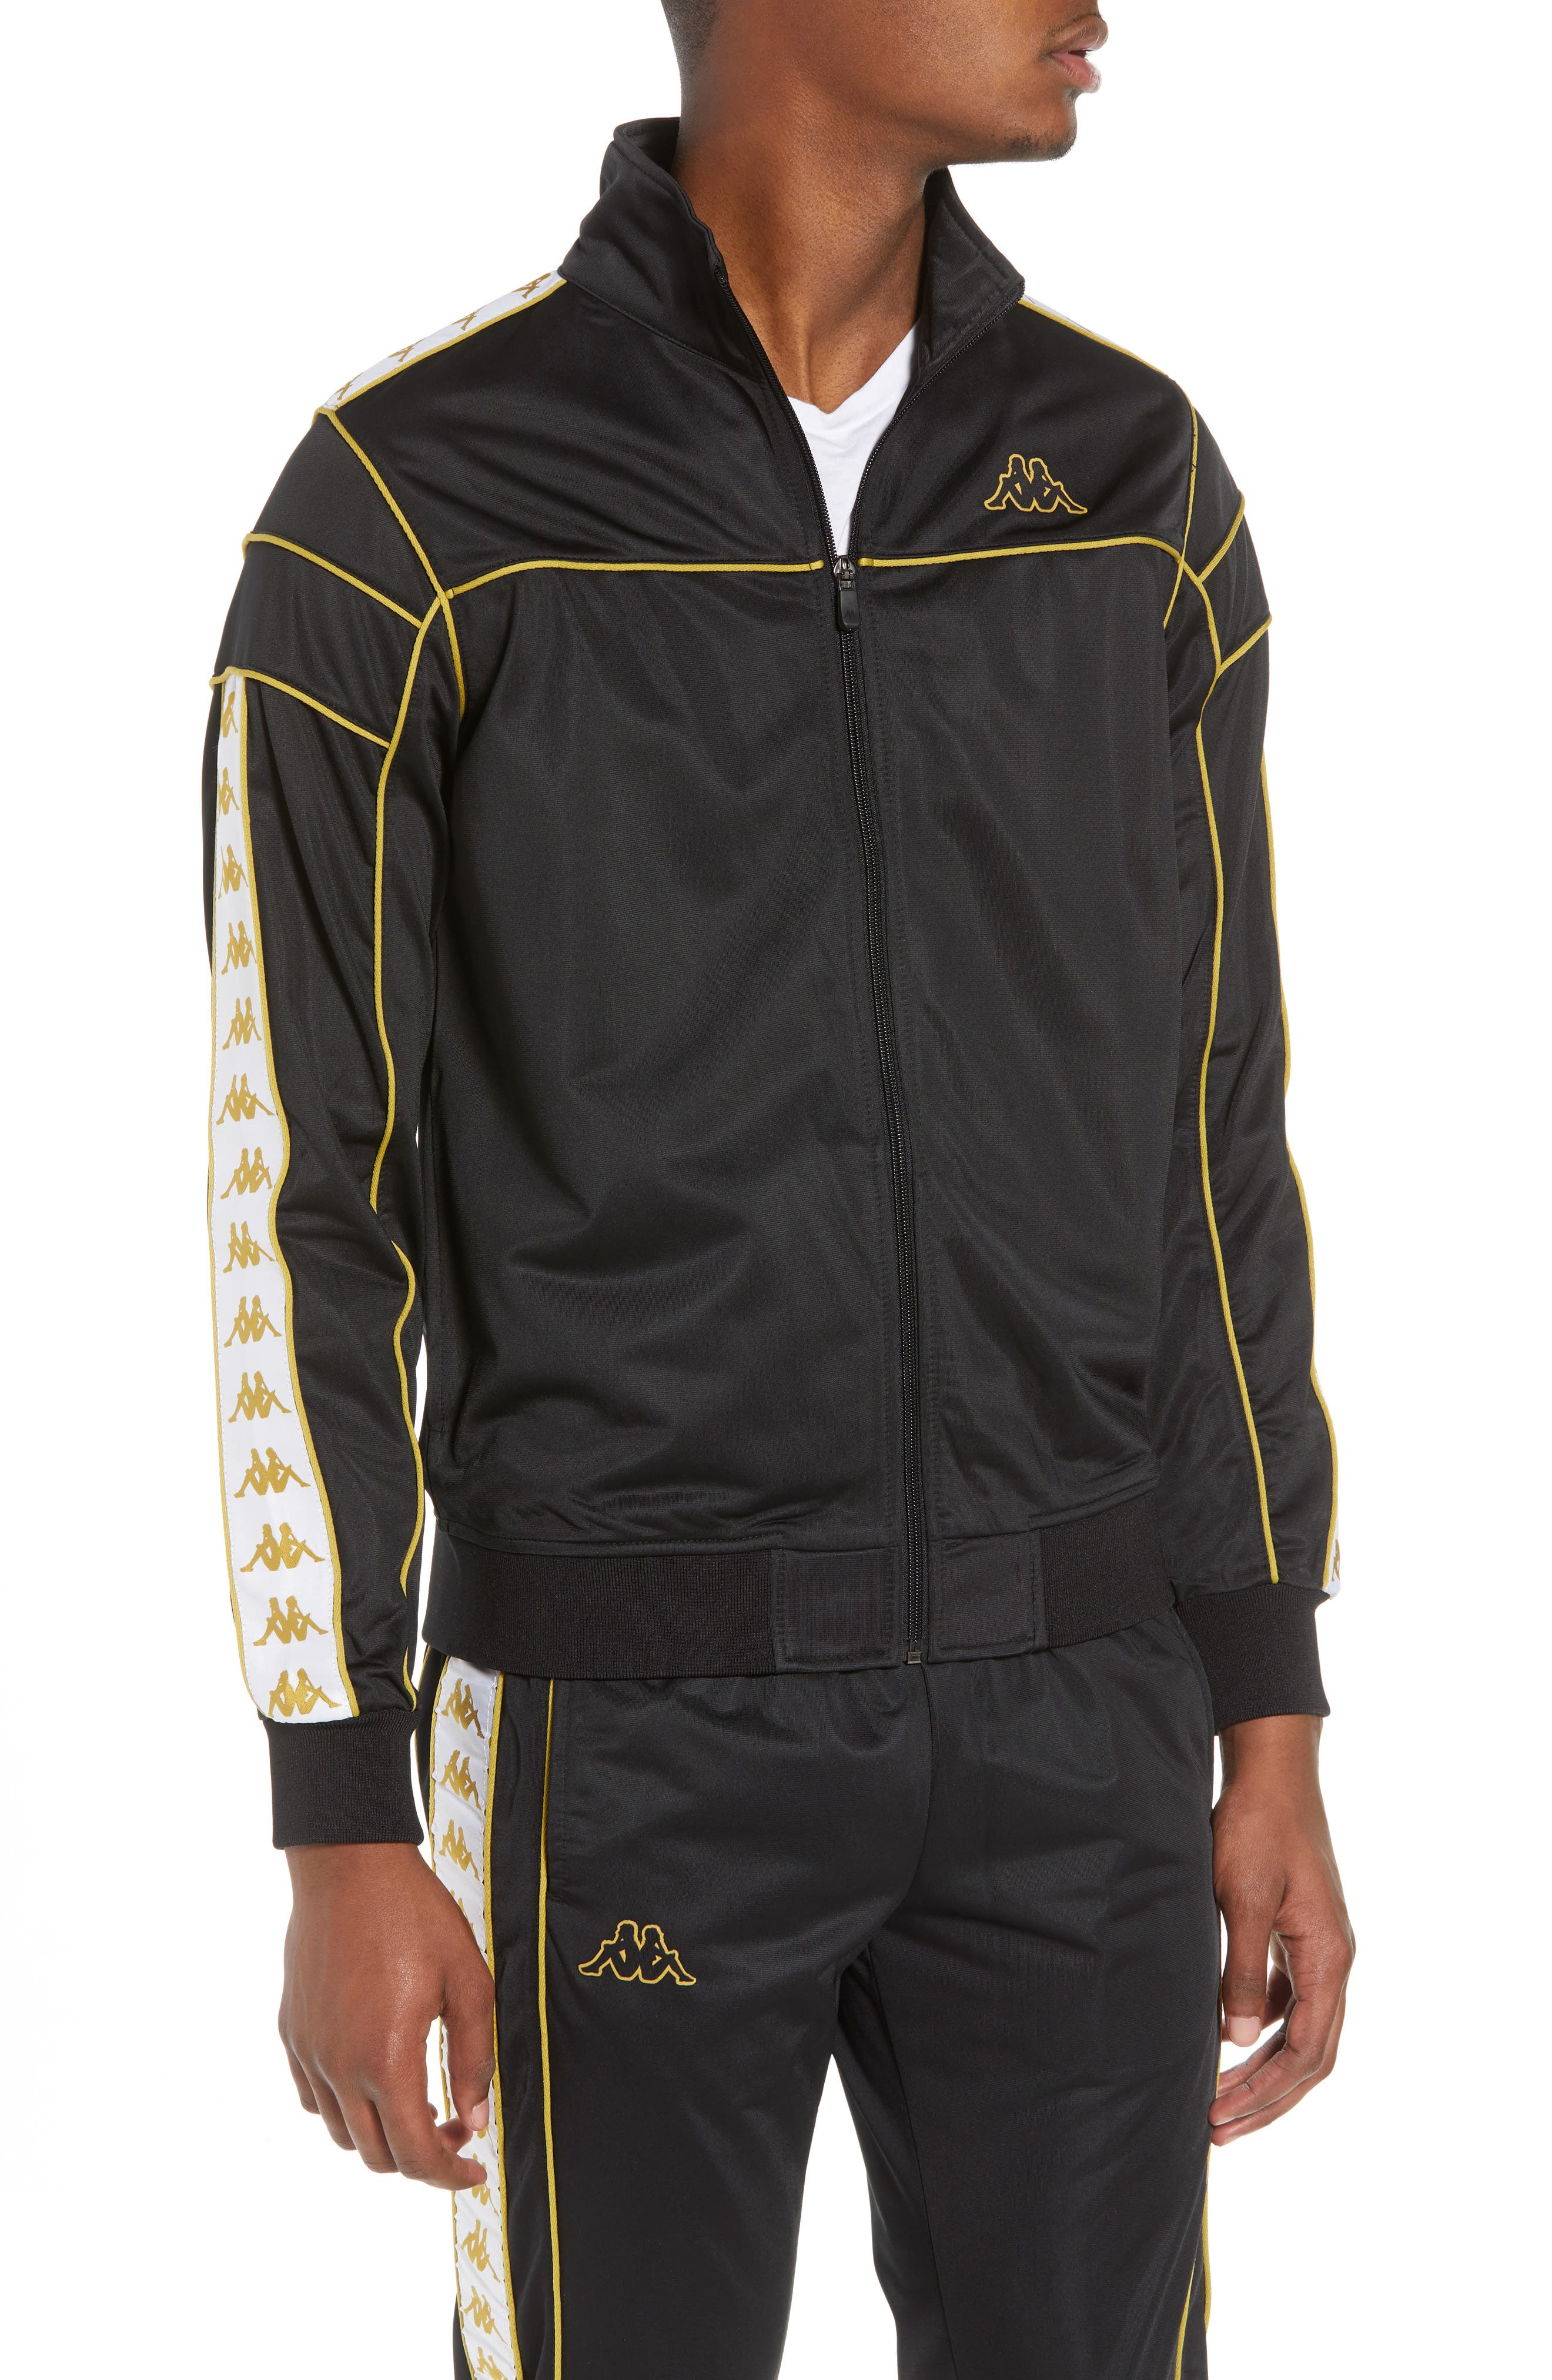 Racing Track Jacket,                         Main,                         color, Black/ White Gold